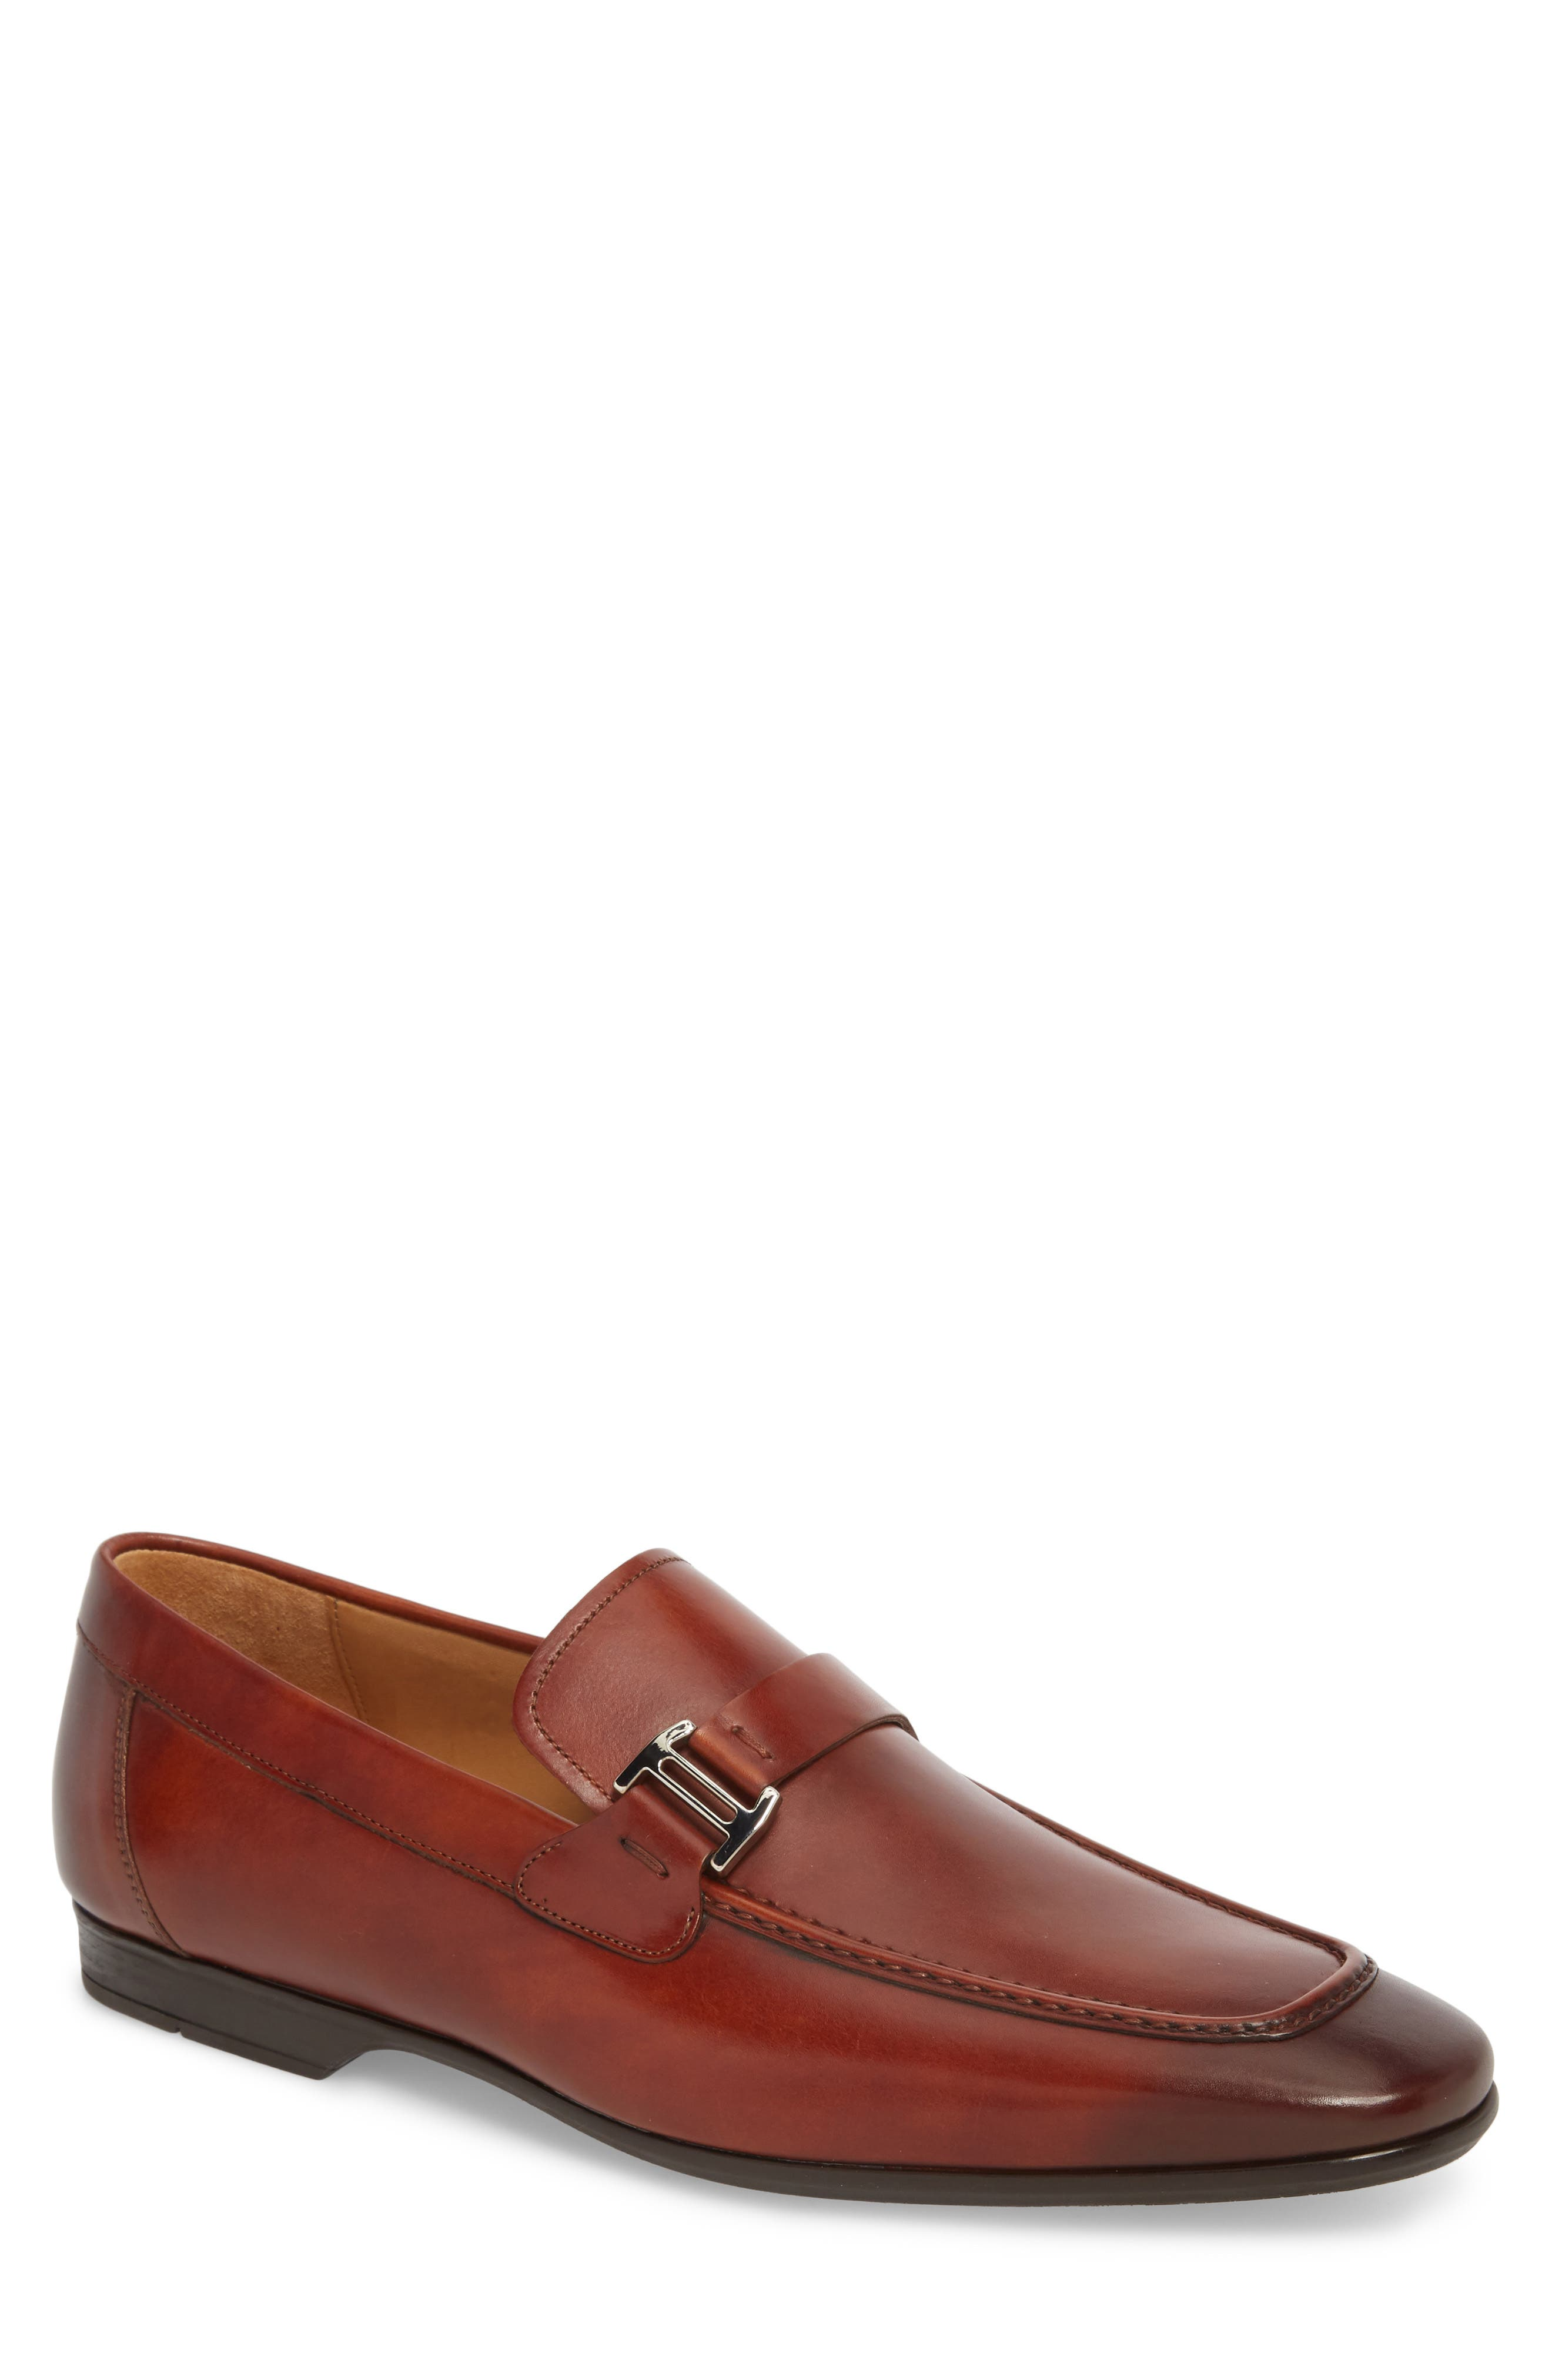 'Lino' Loafer,                         Main,                         color, 202